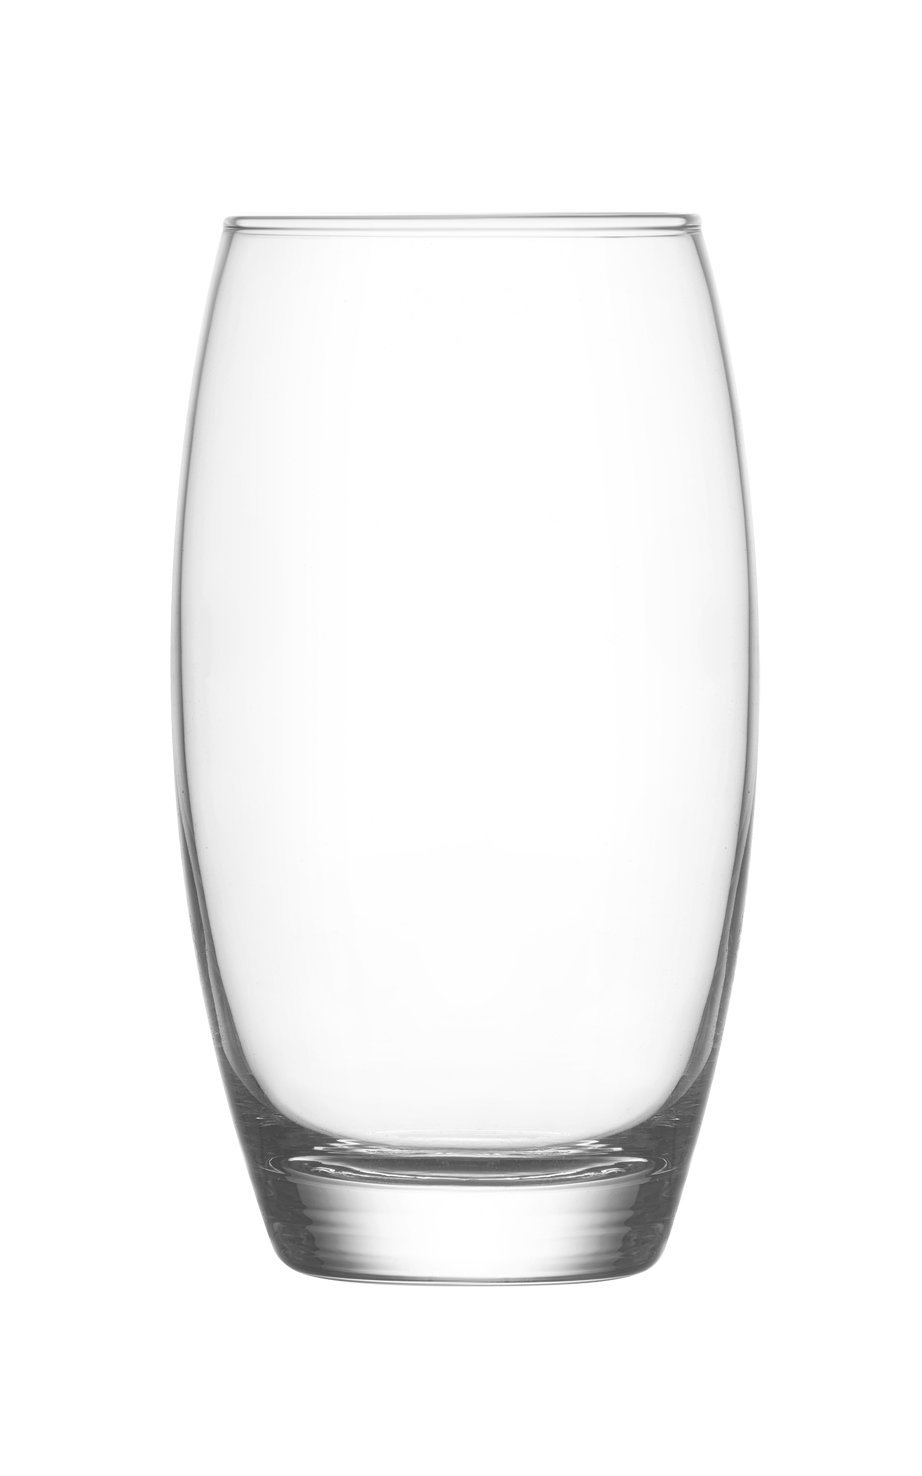 LAV Highball Glasses, All Purpose, Water, Juice, Cocktails Set of 6-17.25 oz